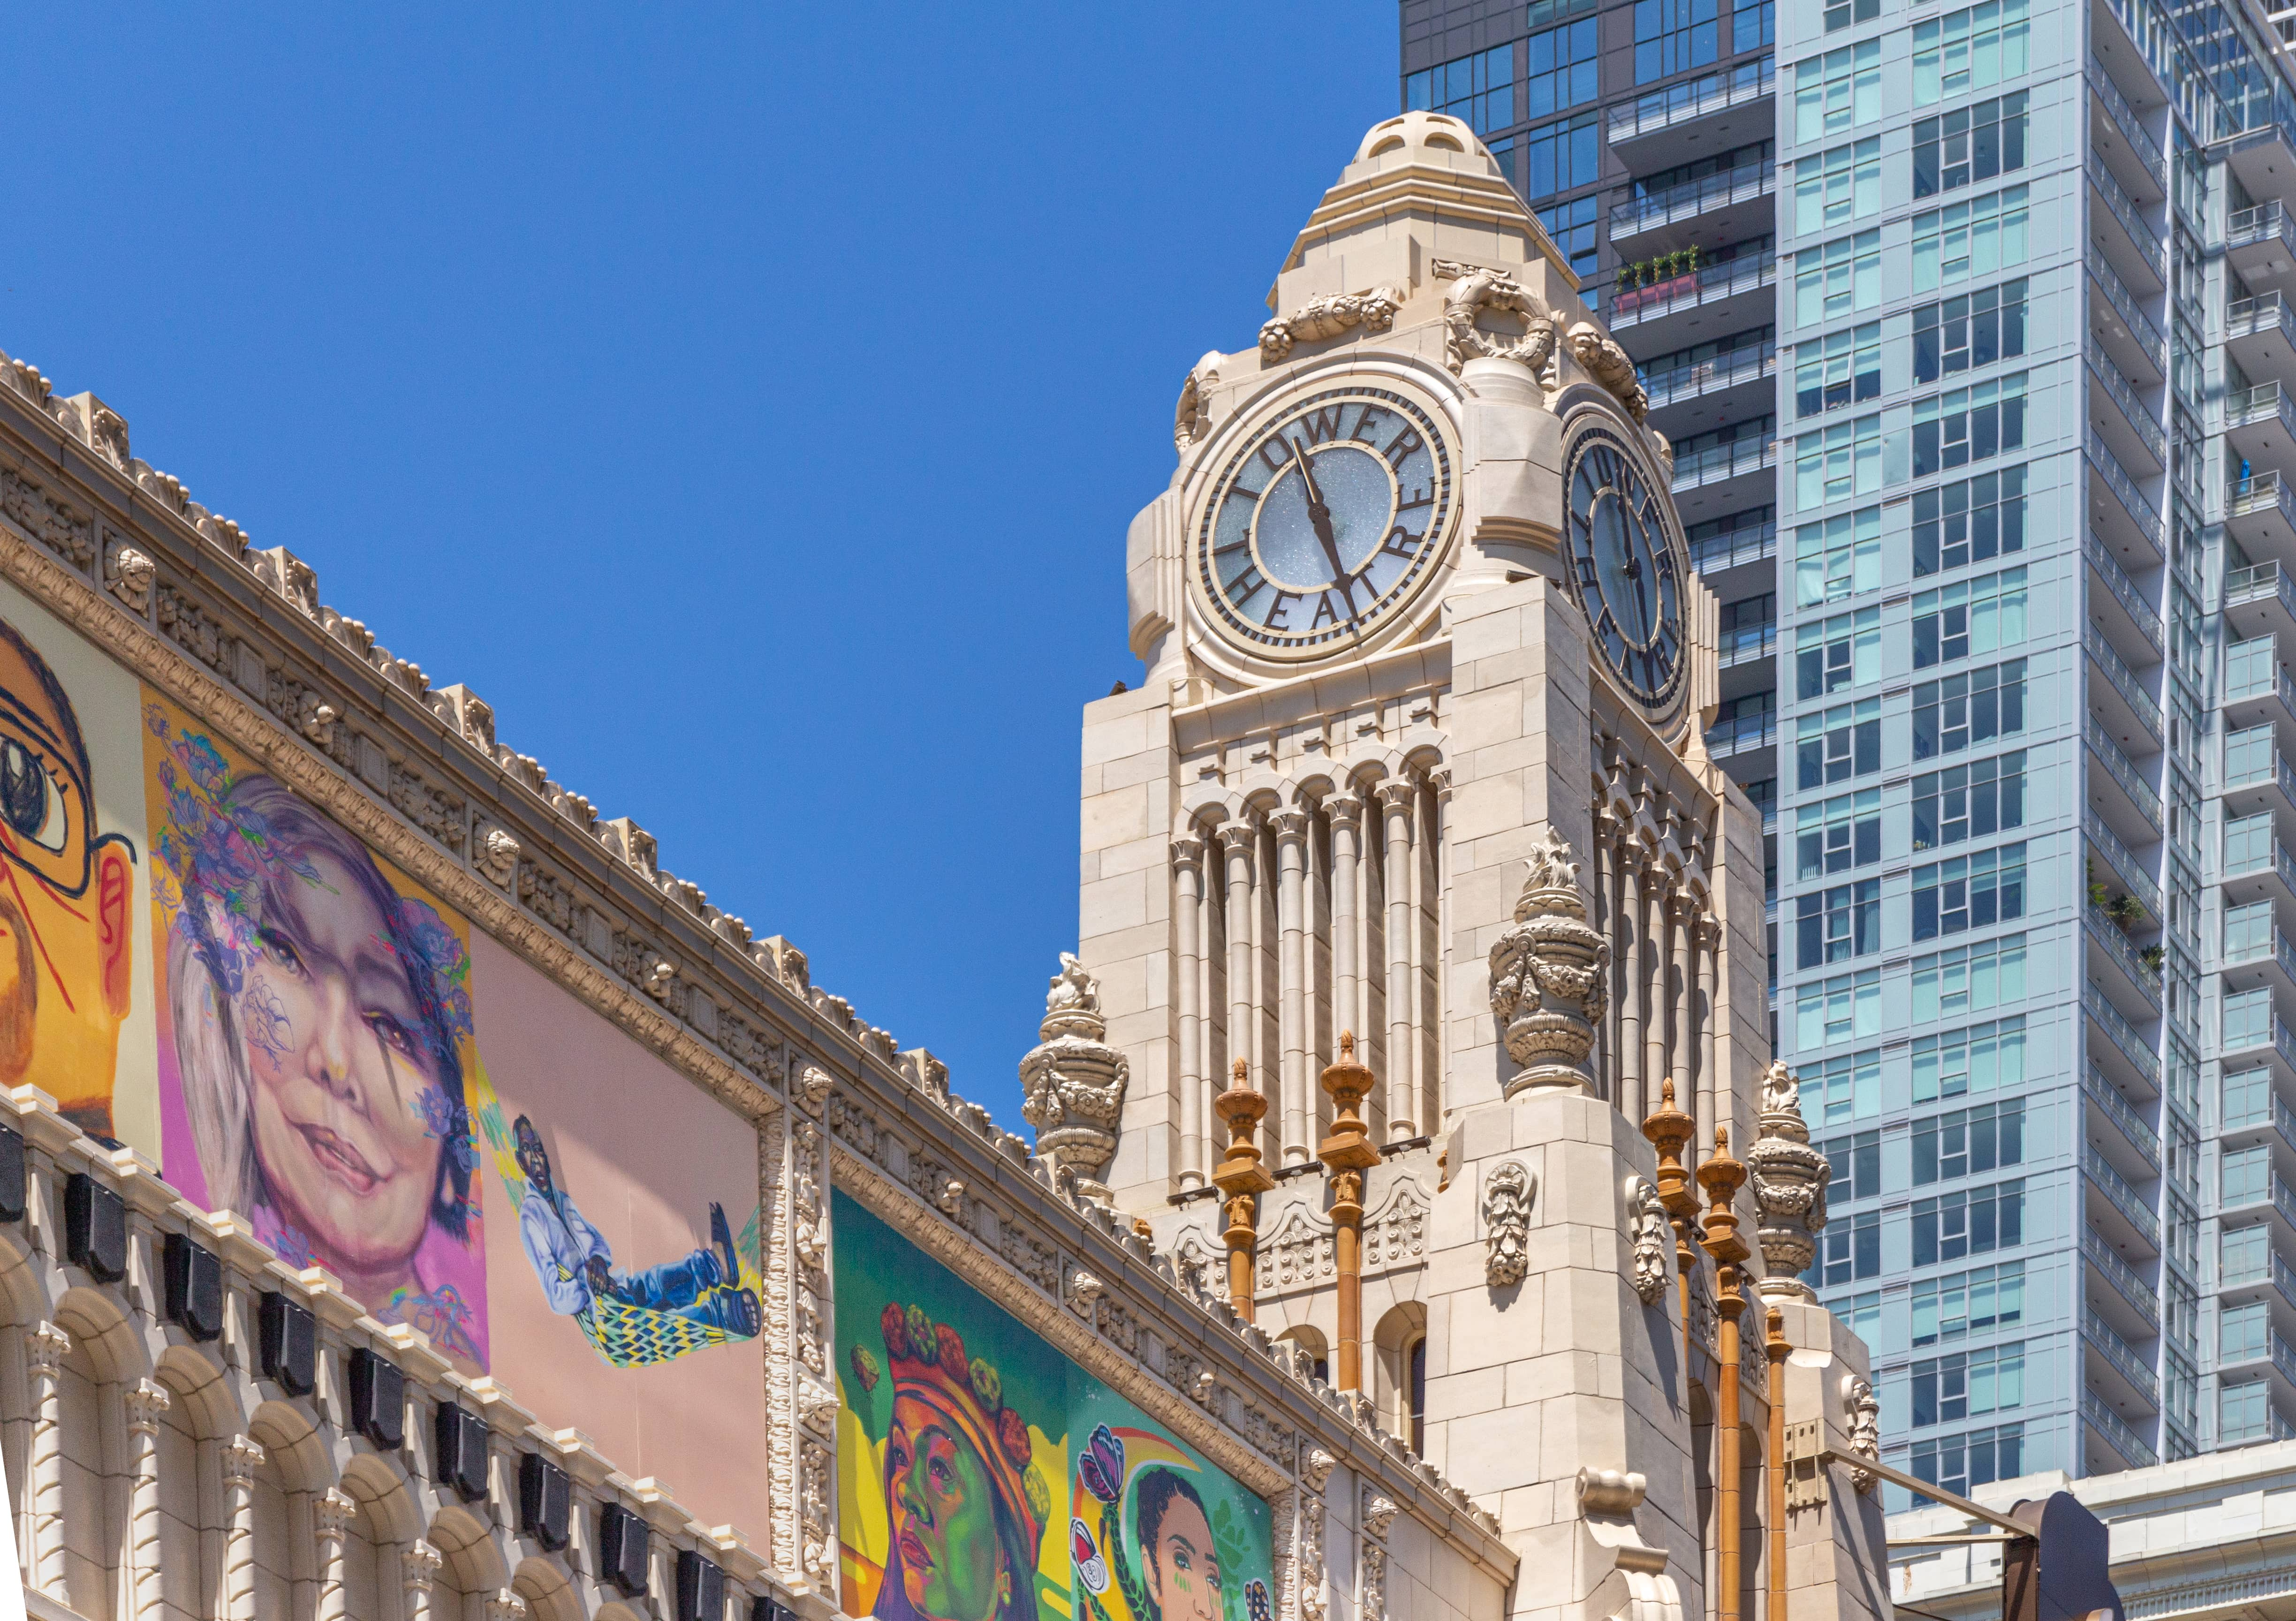 Clock tower and murals at Apple Tower Theatre.